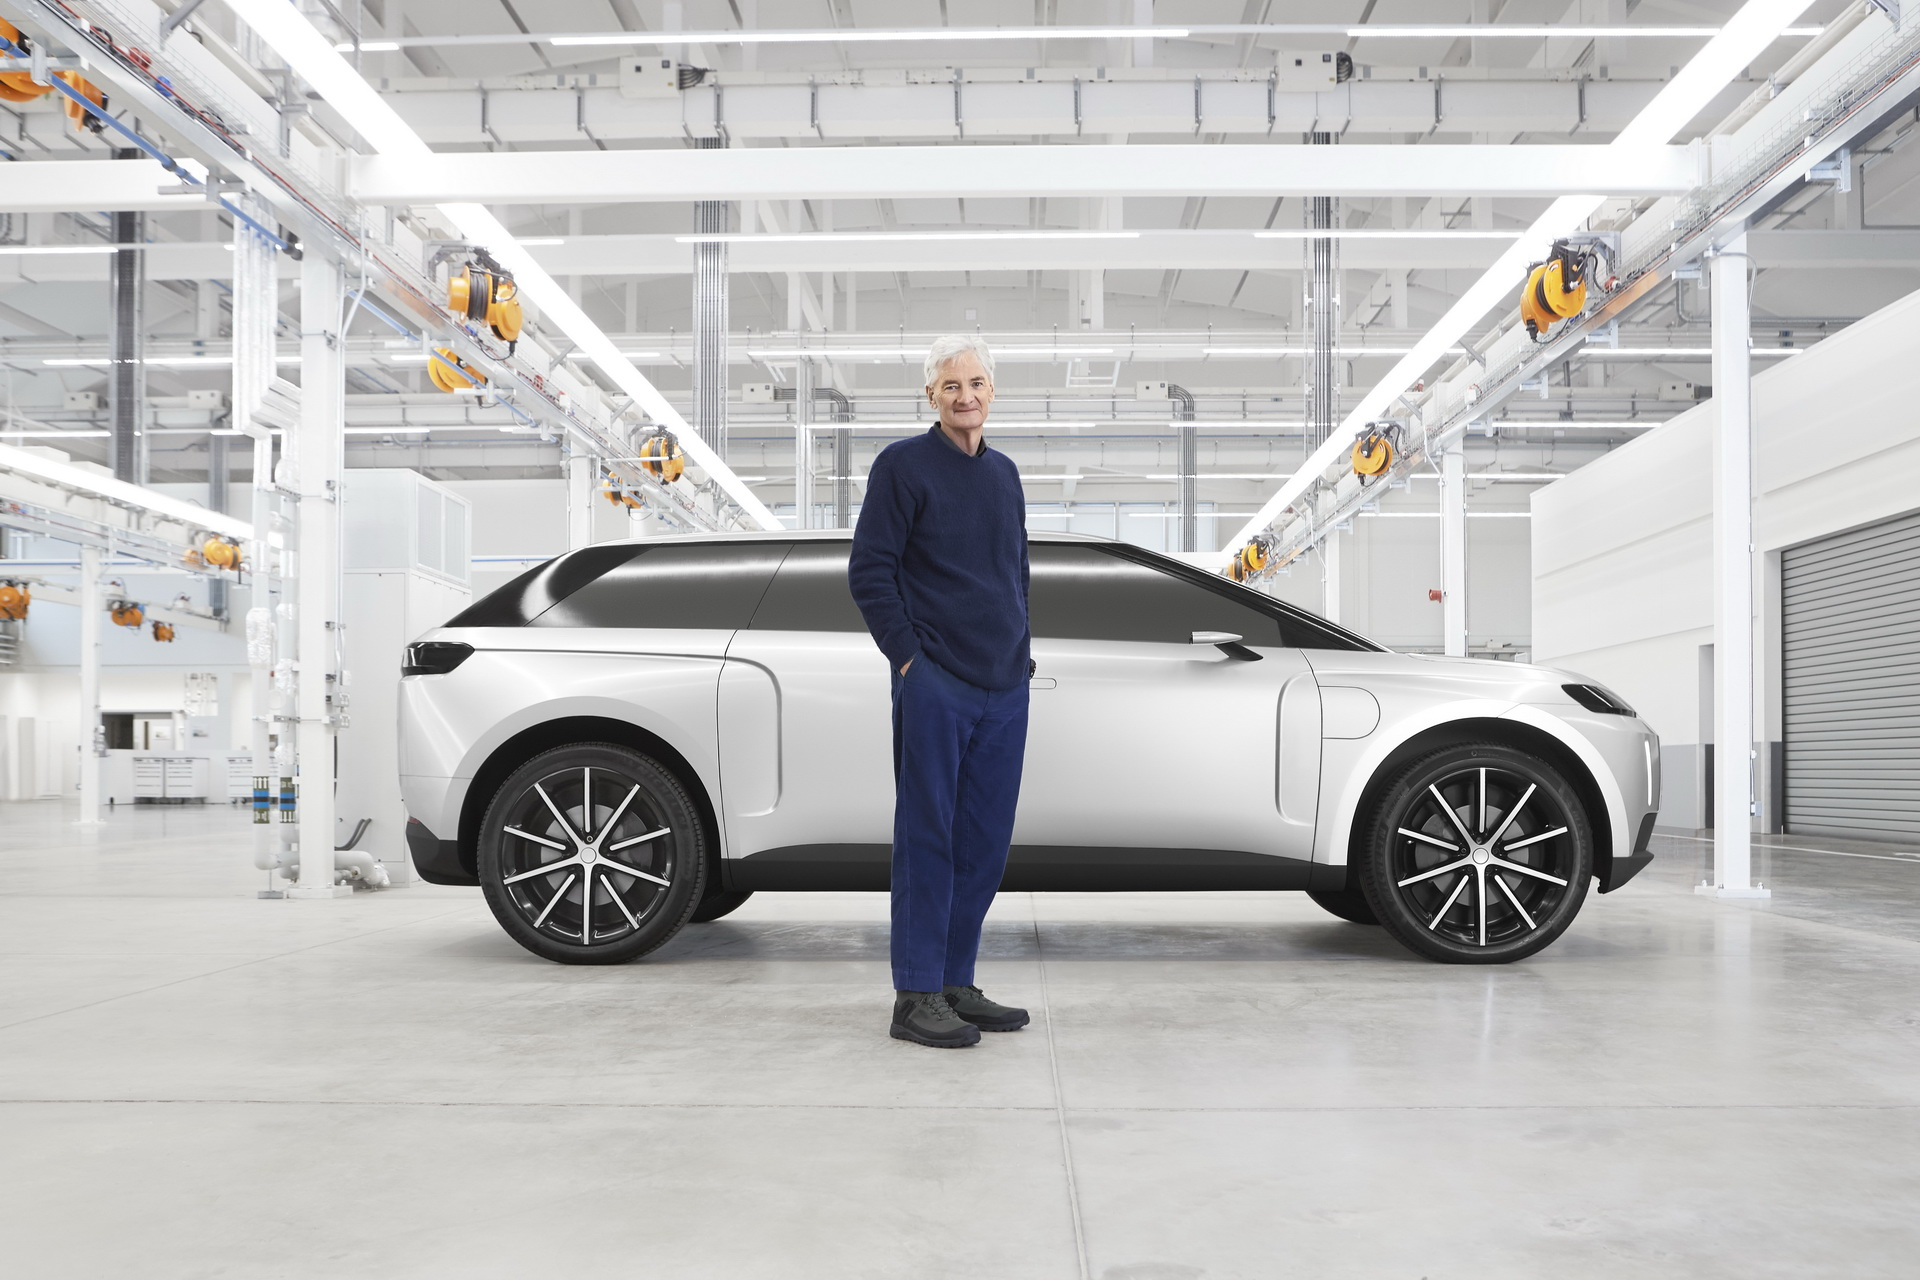 James-Dyson-electric-car-4